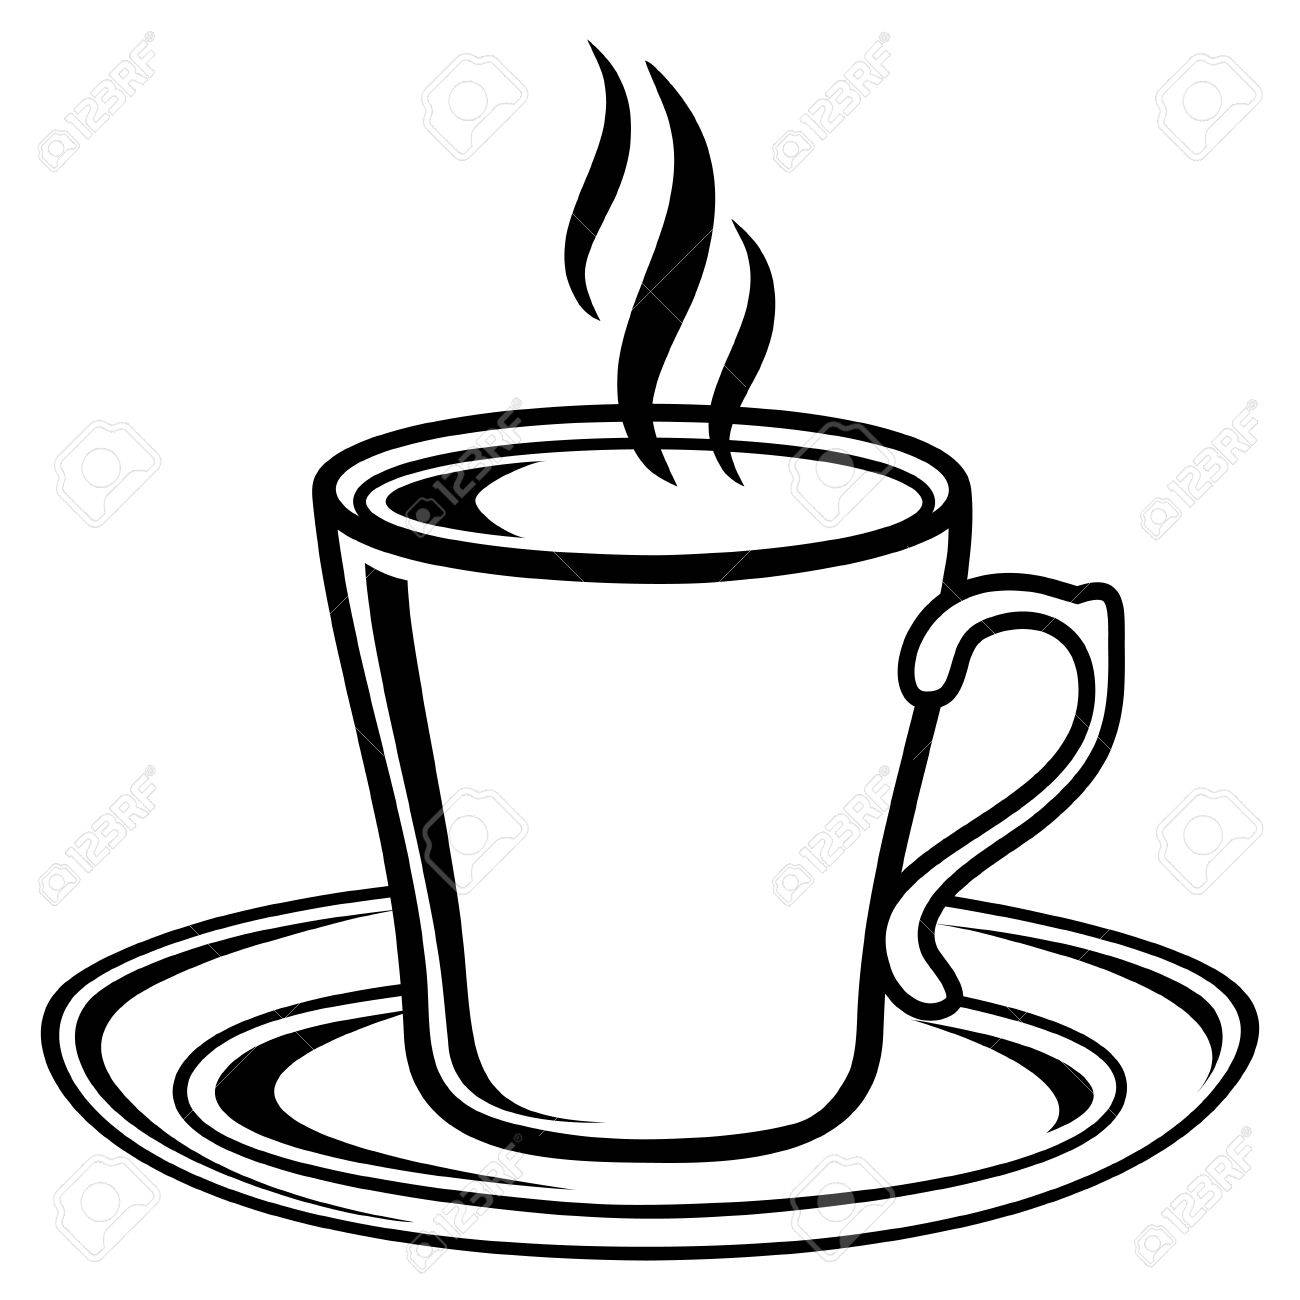 Black And White Coffee Tea Cup Icon Royalty Free Cliparts, Vectors ...